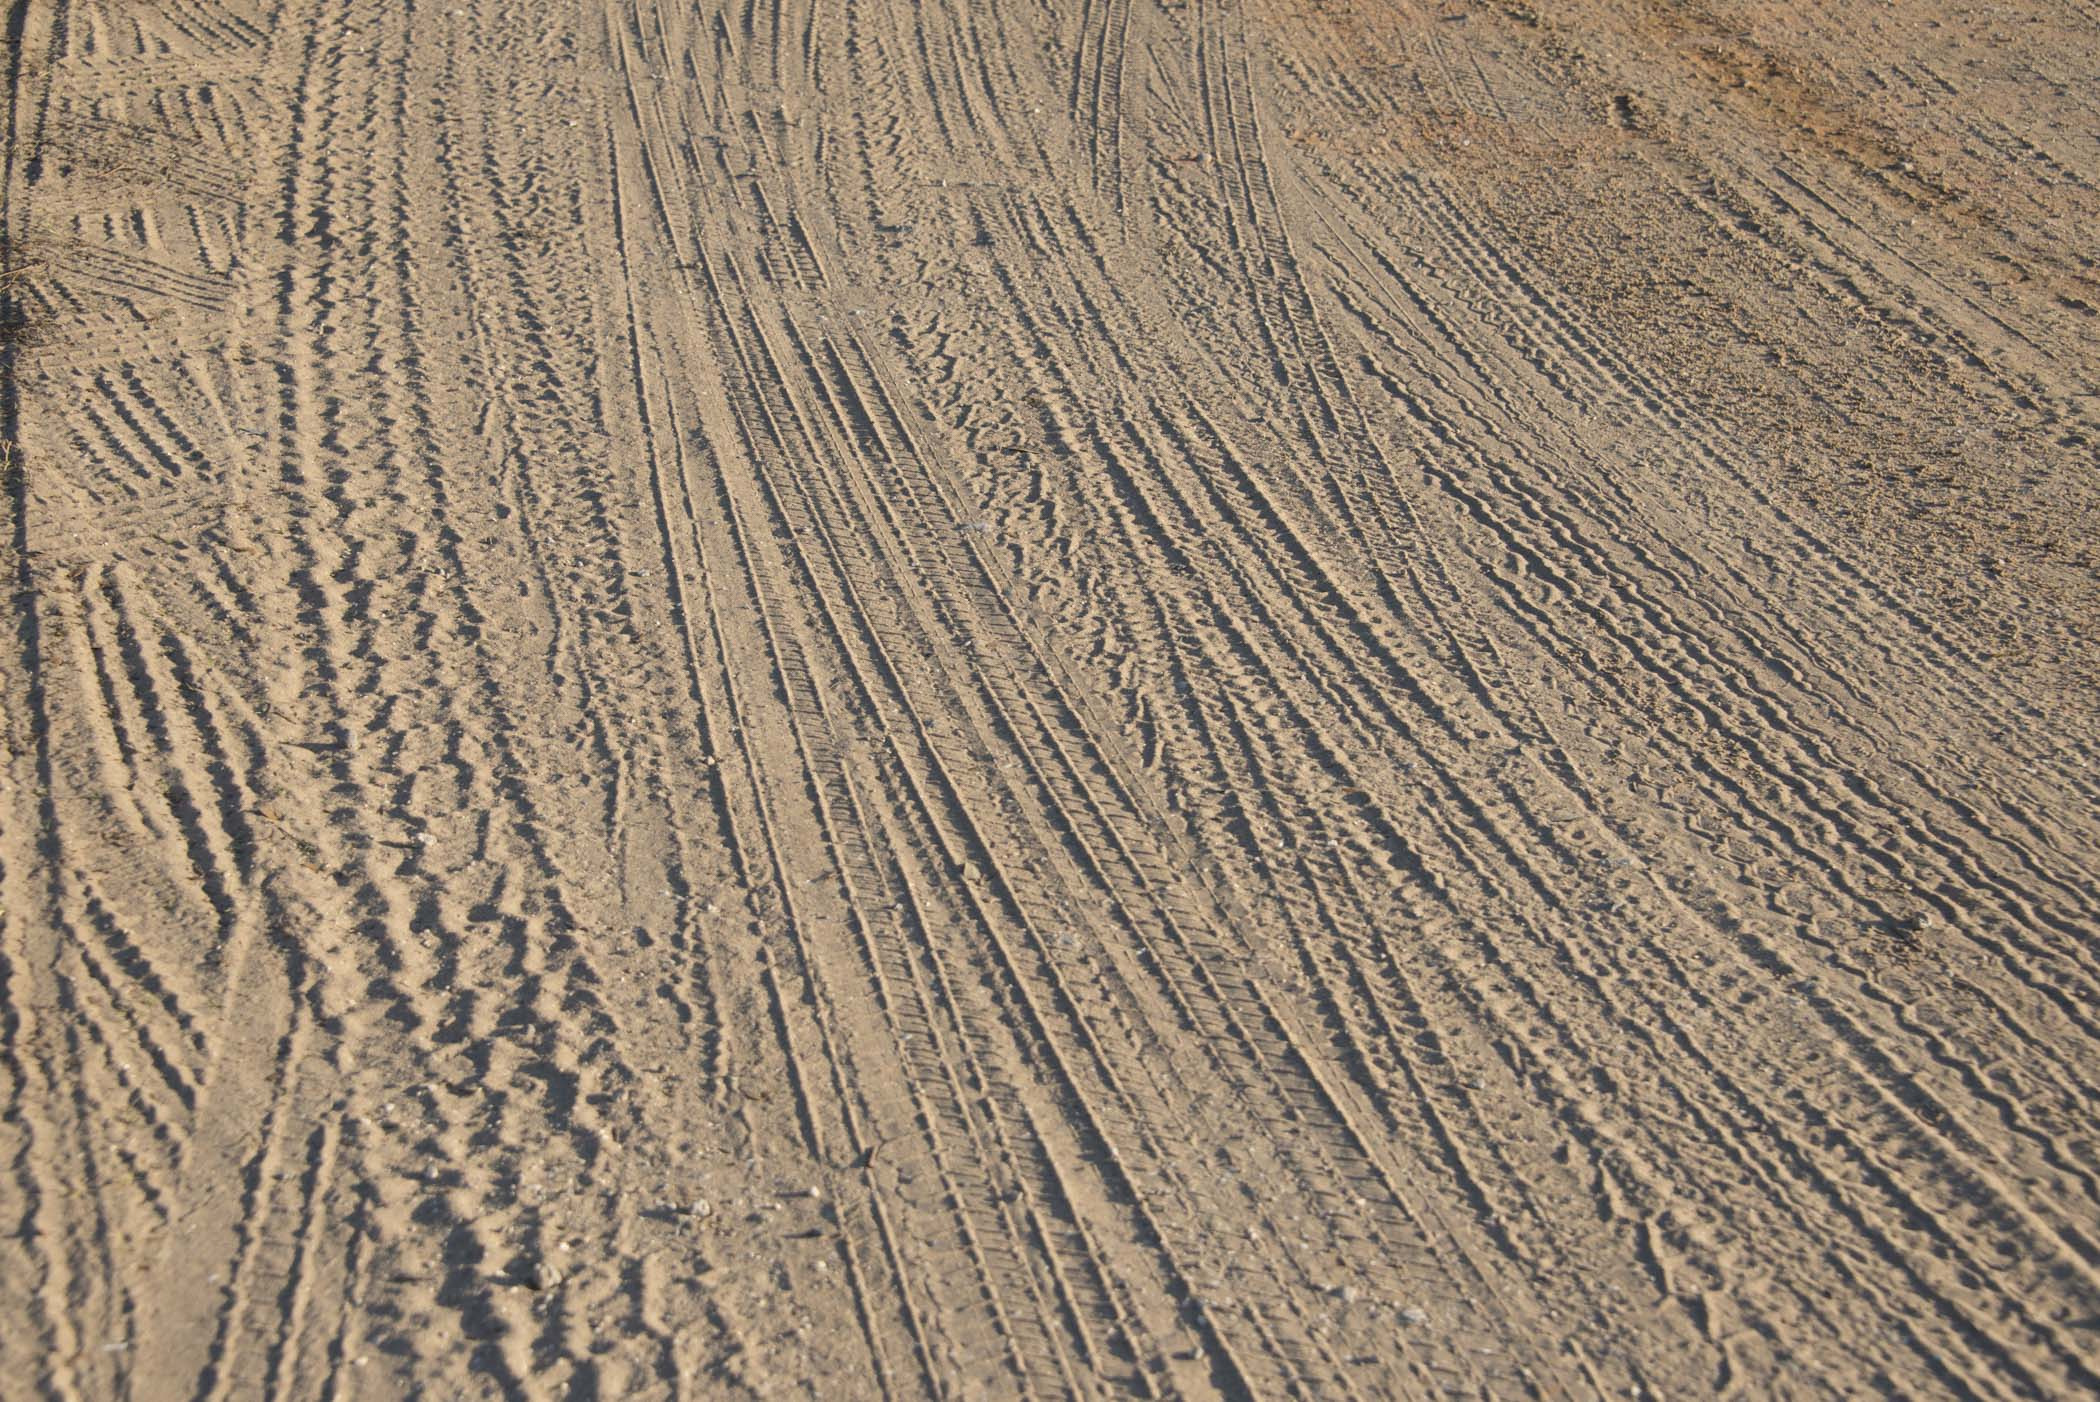 3rd place -  Tire Tracks - Phyllis Bankier